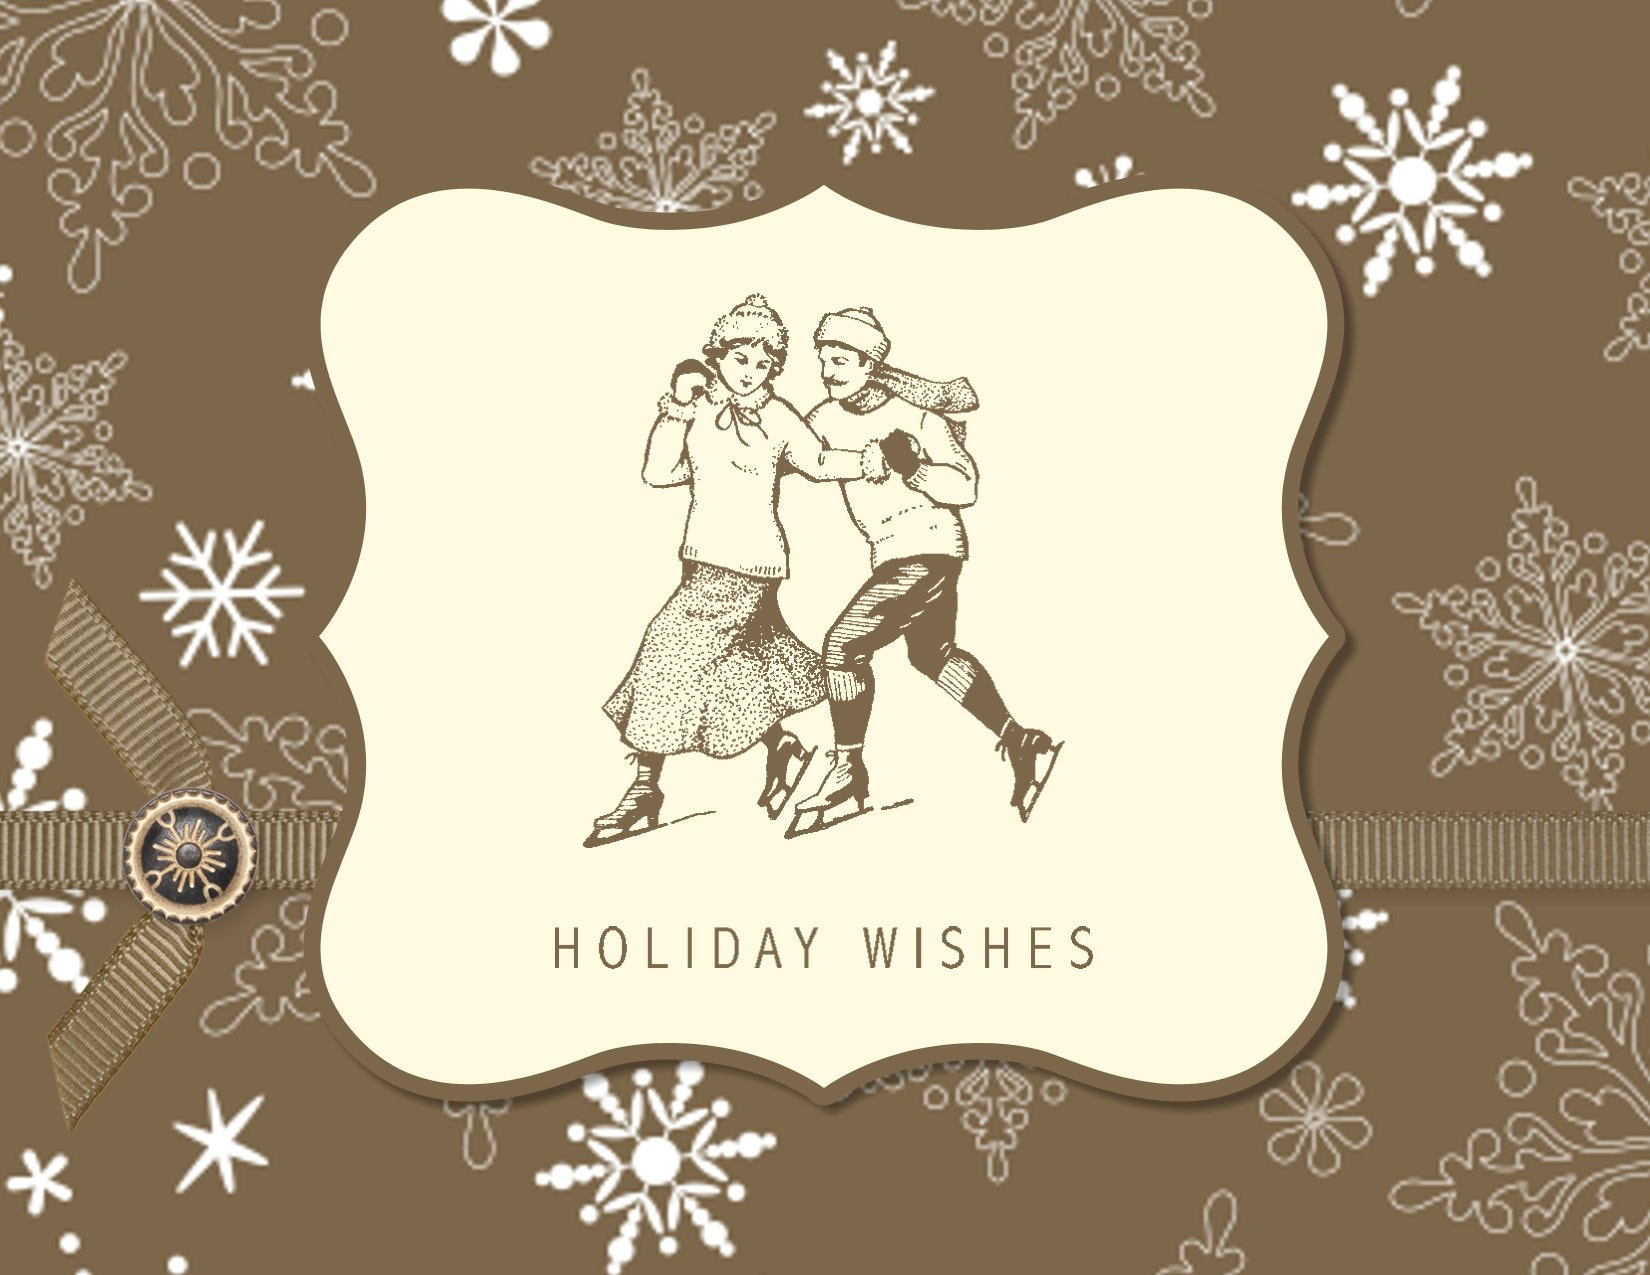 43. Holiday wishes